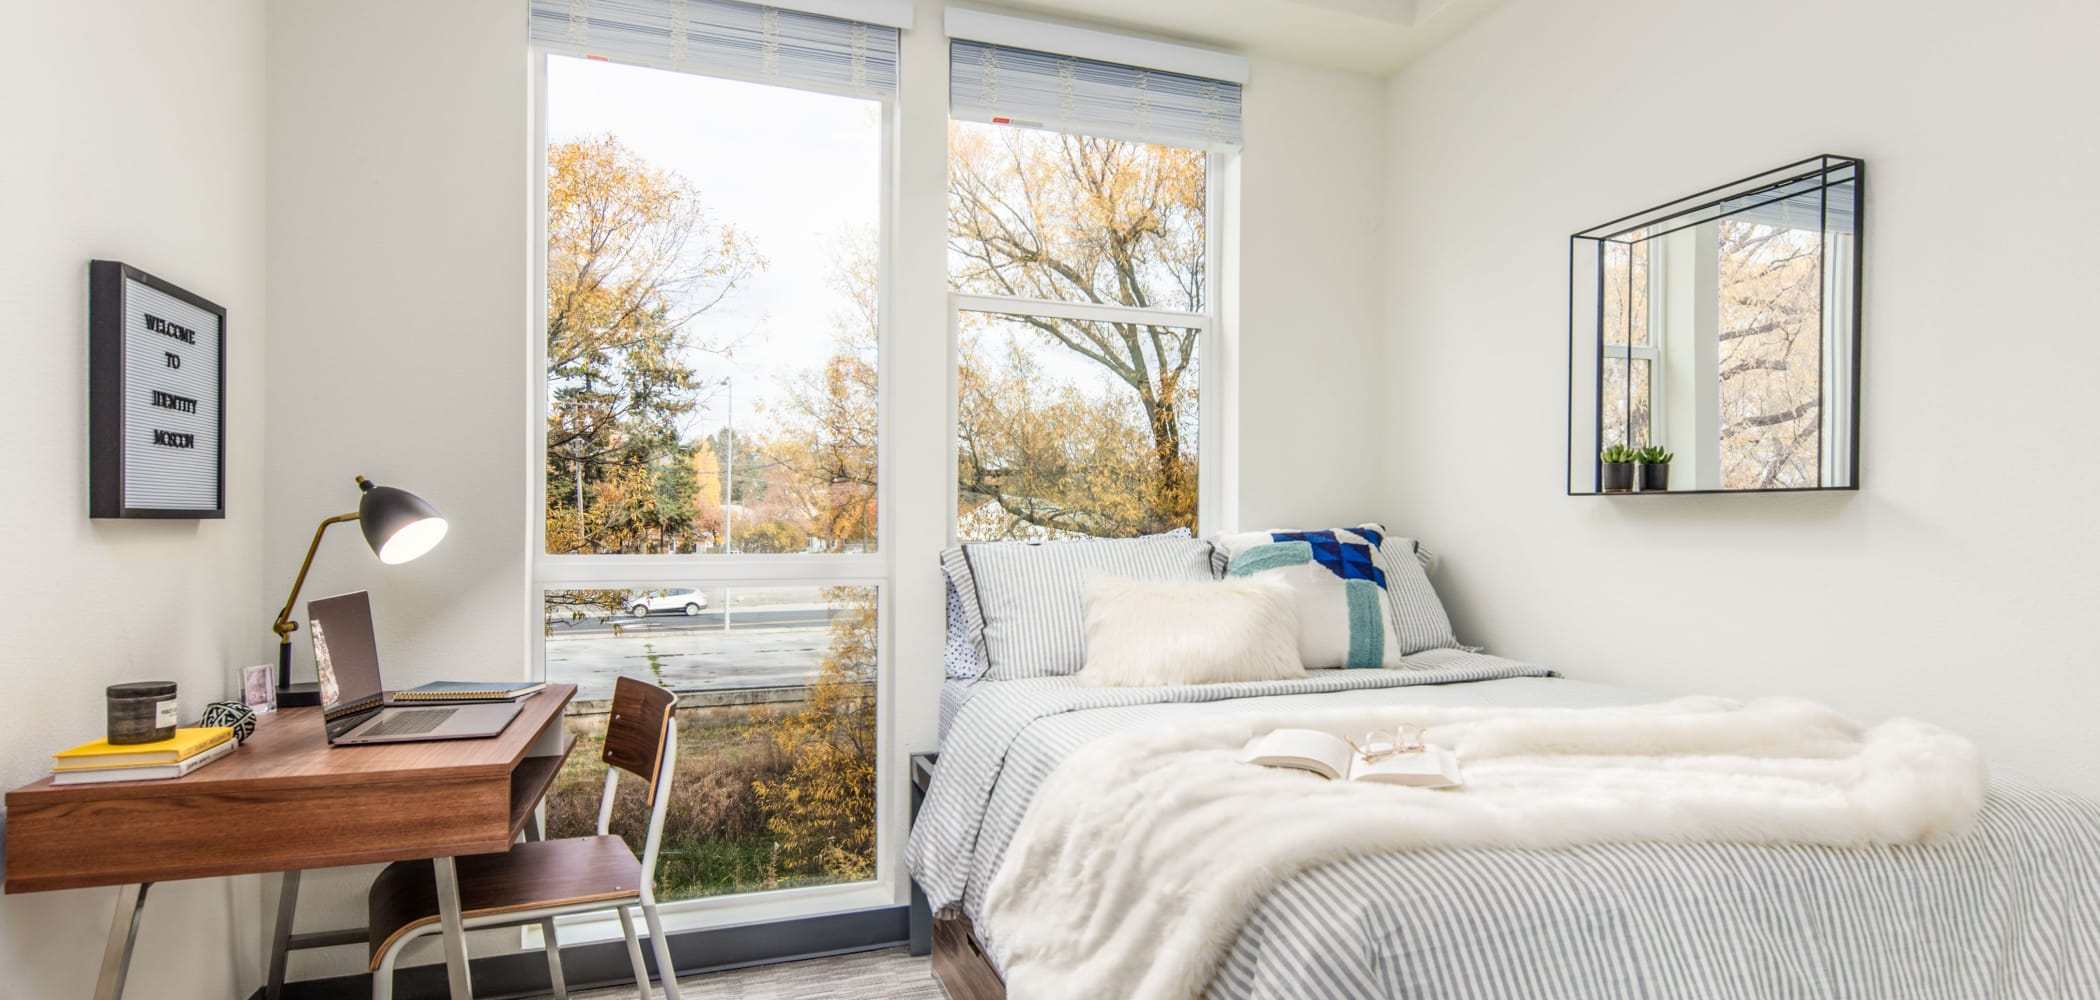 Cozy bedroom with a view at IDENTITY Moscow in Moscow, Idaho